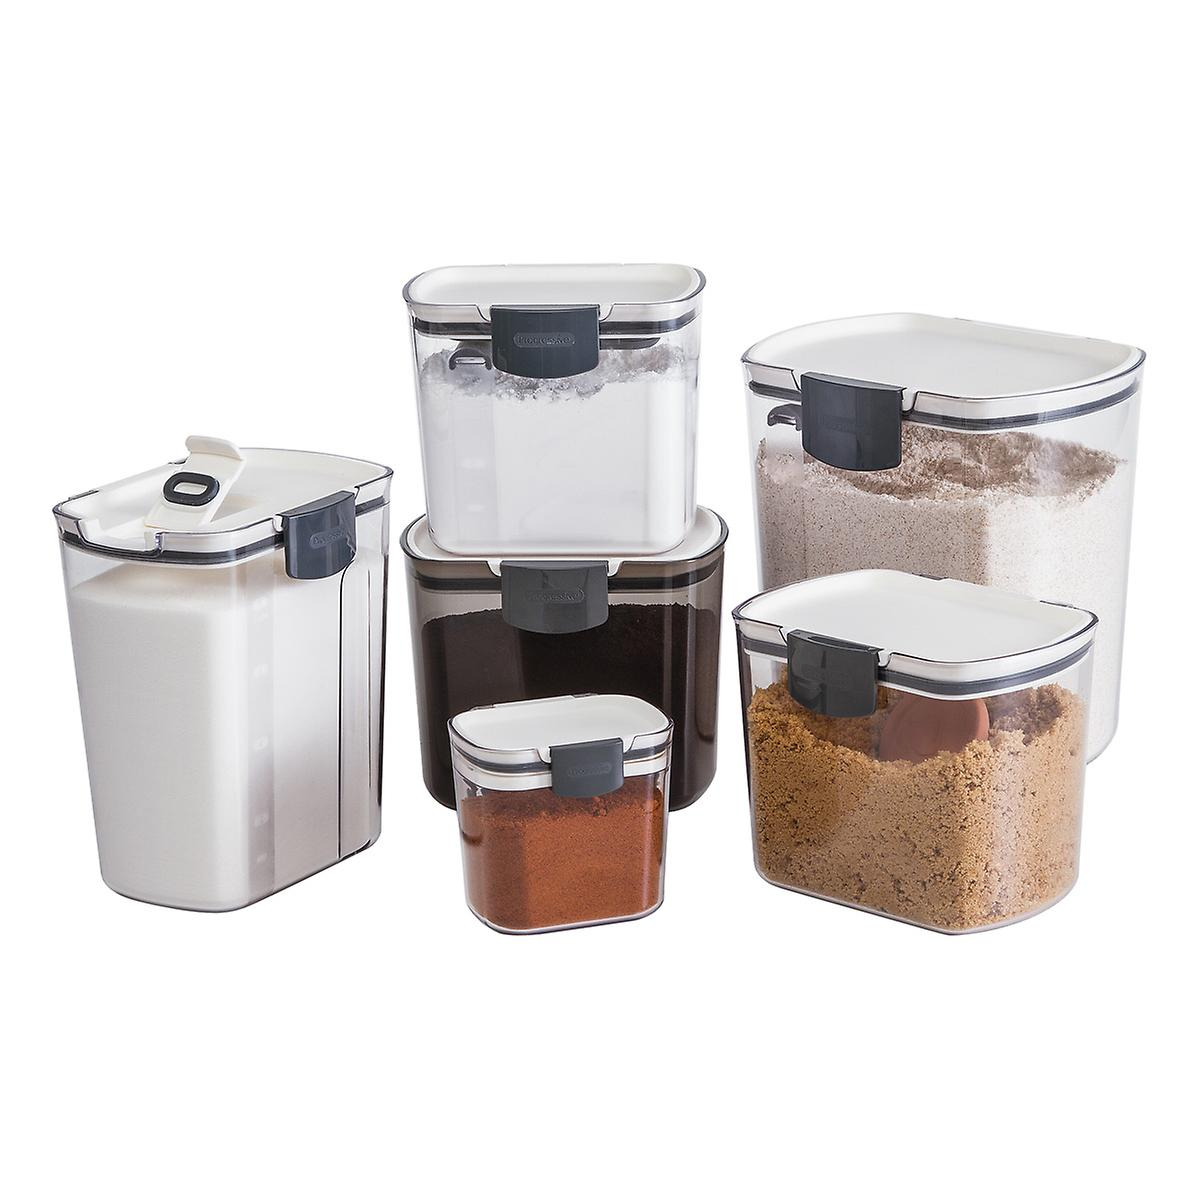 Kitchen Storage Containers prokeeper 4 qt. flour container | the container store